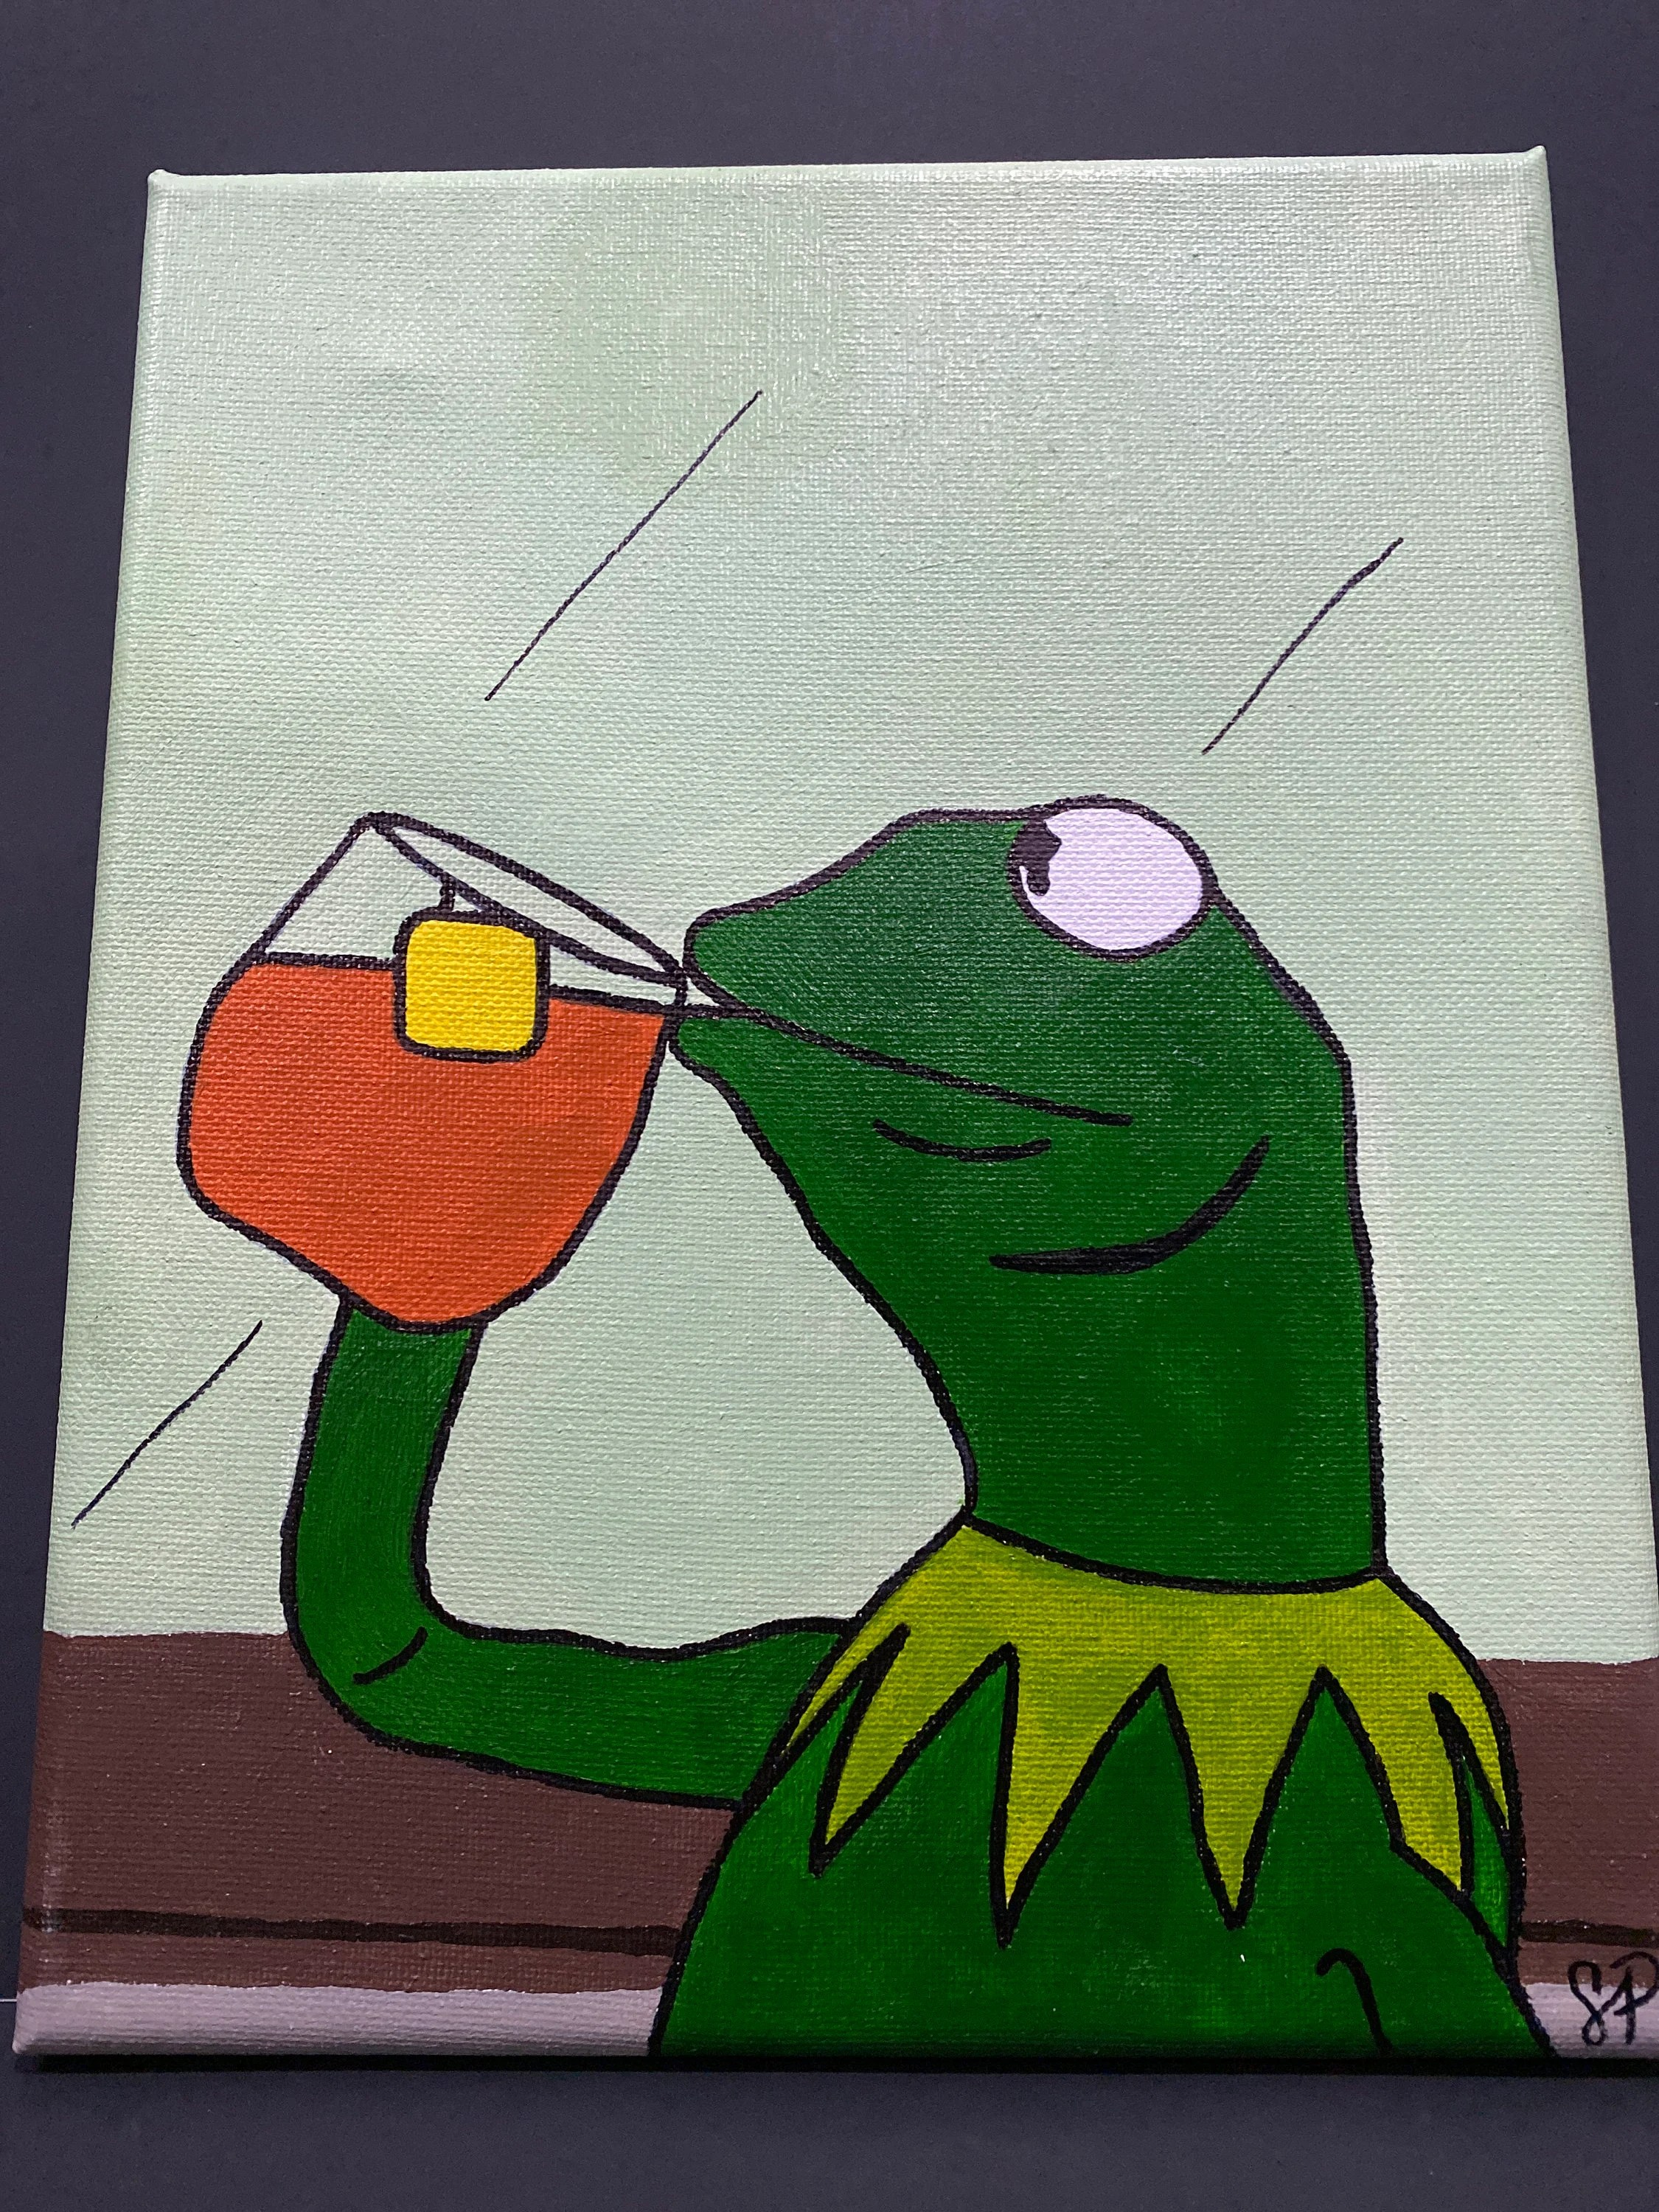 Kermit Meme Painting : kermit, painting, Kermit, Sipping, Painting